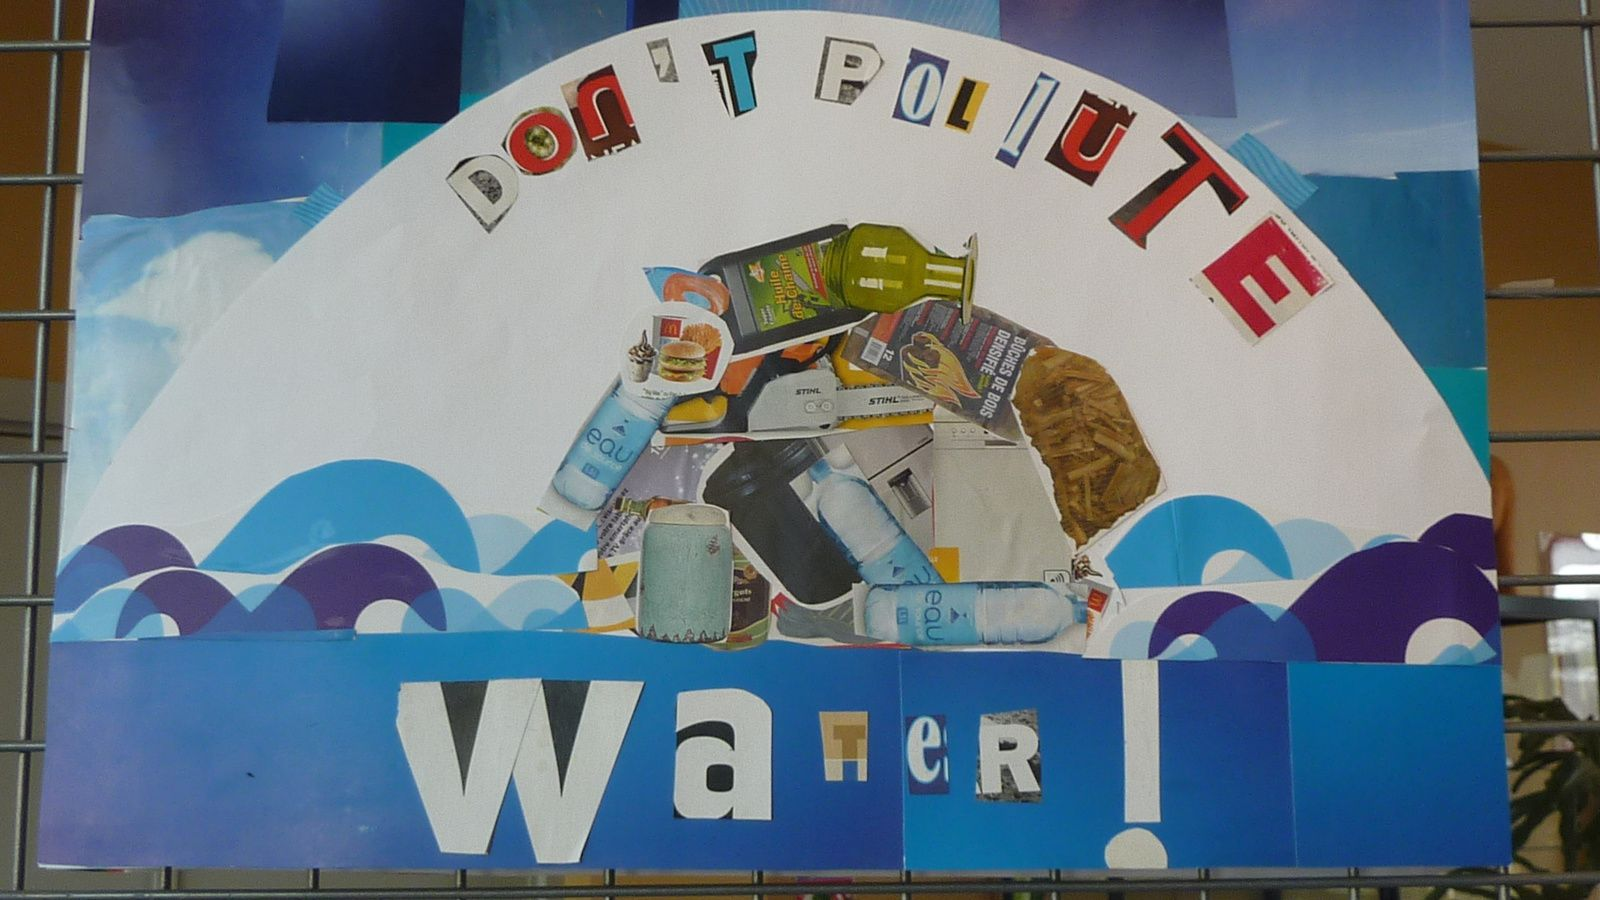 Don't pollute water !